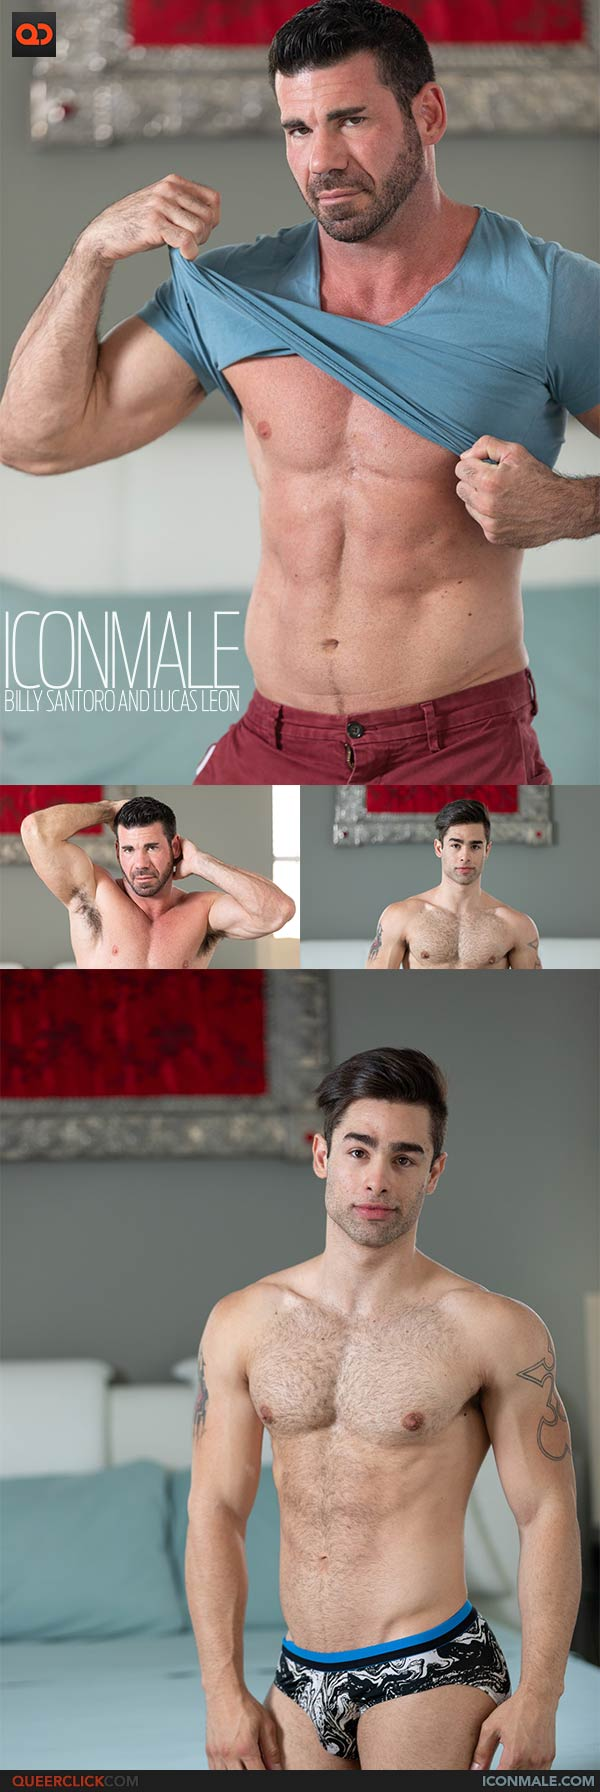 IconMale: Billy Santoro and Lucas Leon